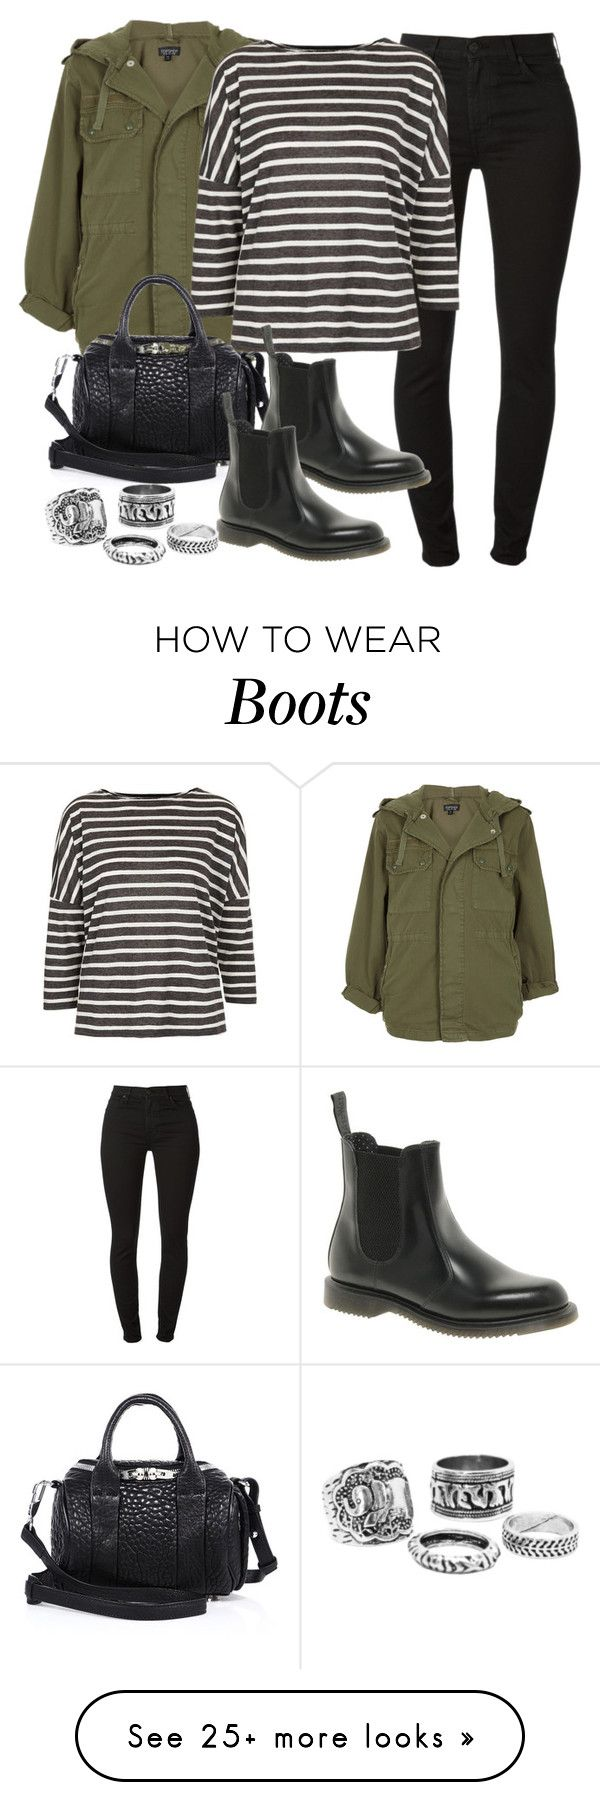 """""""Style #9266"""" by vany-alvarado on Polyvore featuring Topshop, 7 For All Mankind, Alexander Wang and Dr. Martens"""